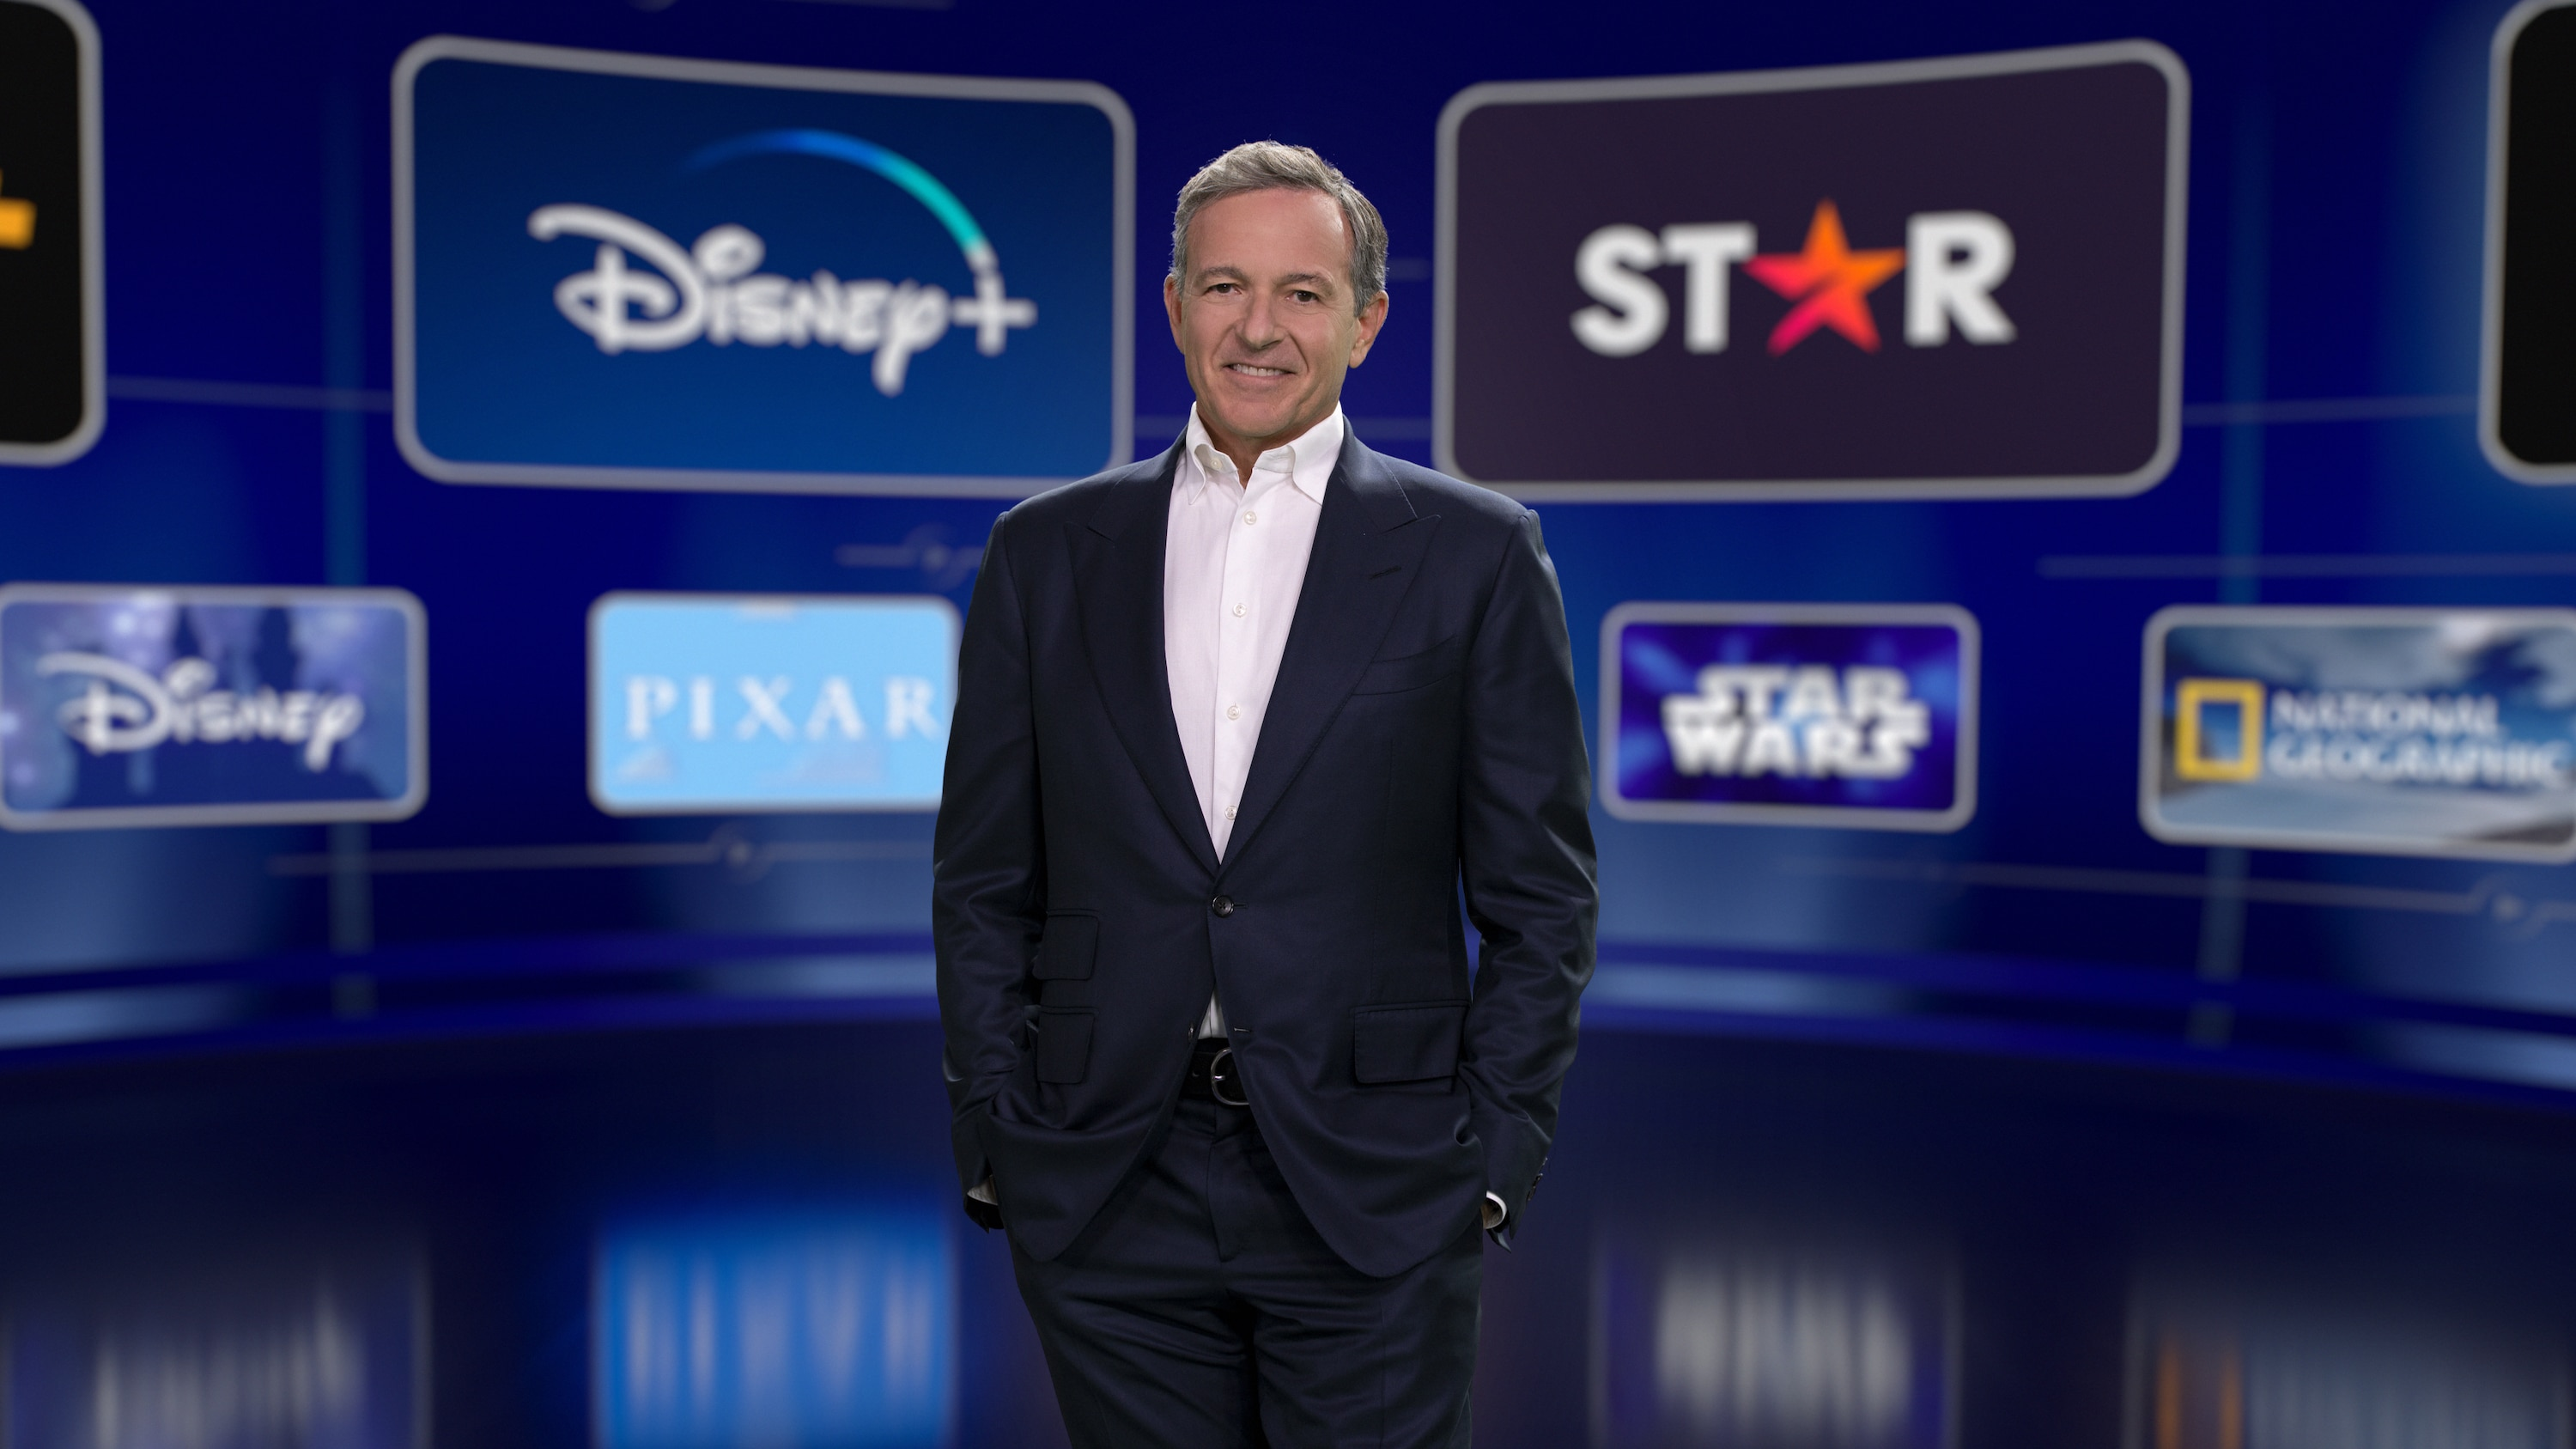 Robert A. Iger, Executive Chairman and Chairman of the Board, at The Walt Disney Company's Investor Day 2020.